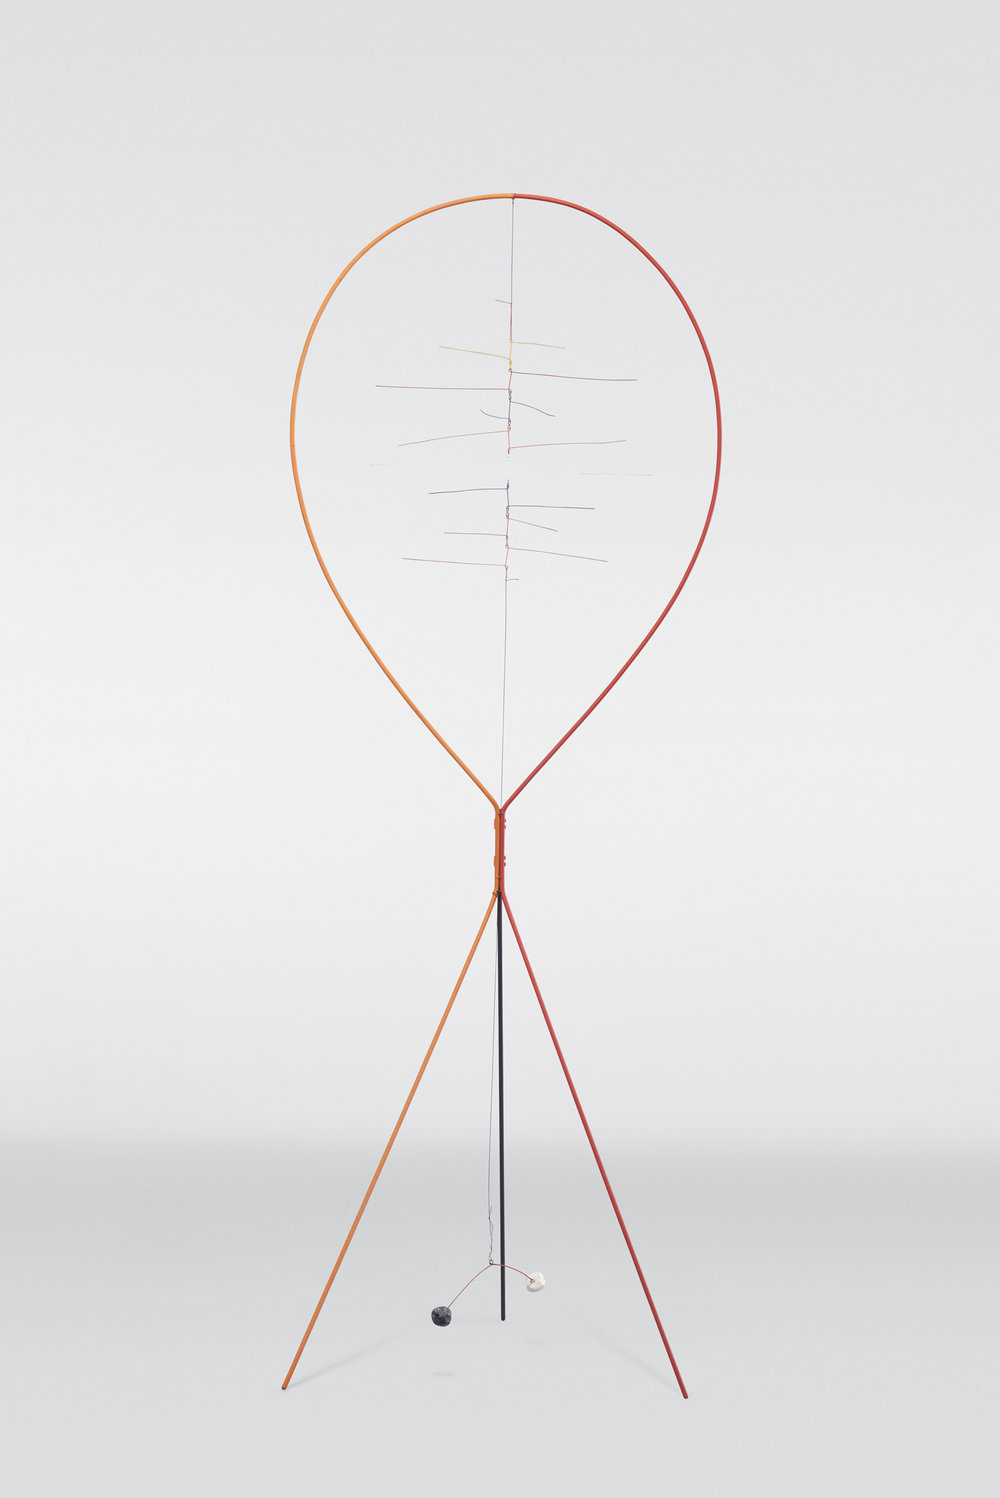 Calder_Hour_Glass_1941_Sequence_031 BEAUTY_SHOT_final.jpg